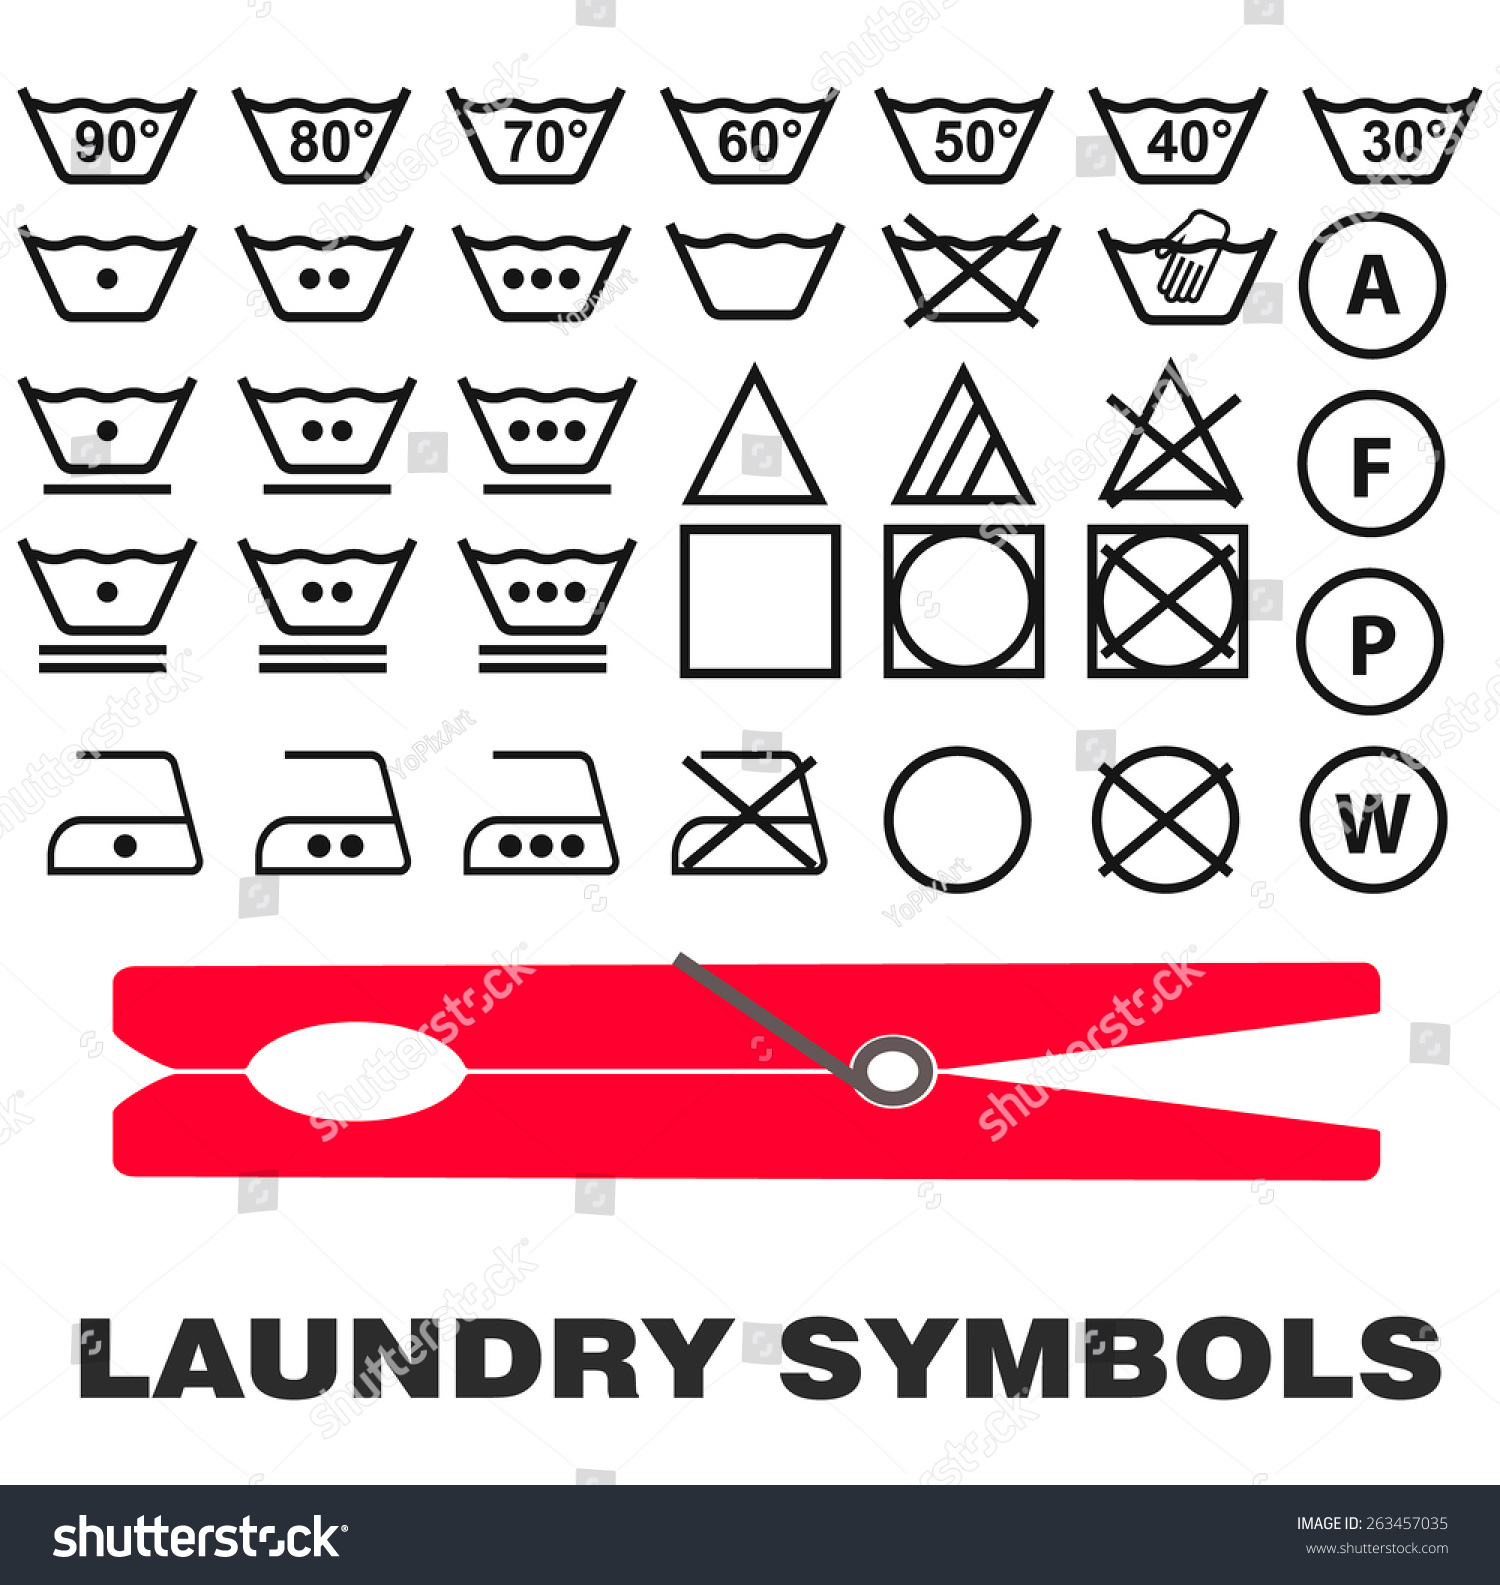 Royalty Free Laundry Care Symbols Icons Black On 263457035 Stock